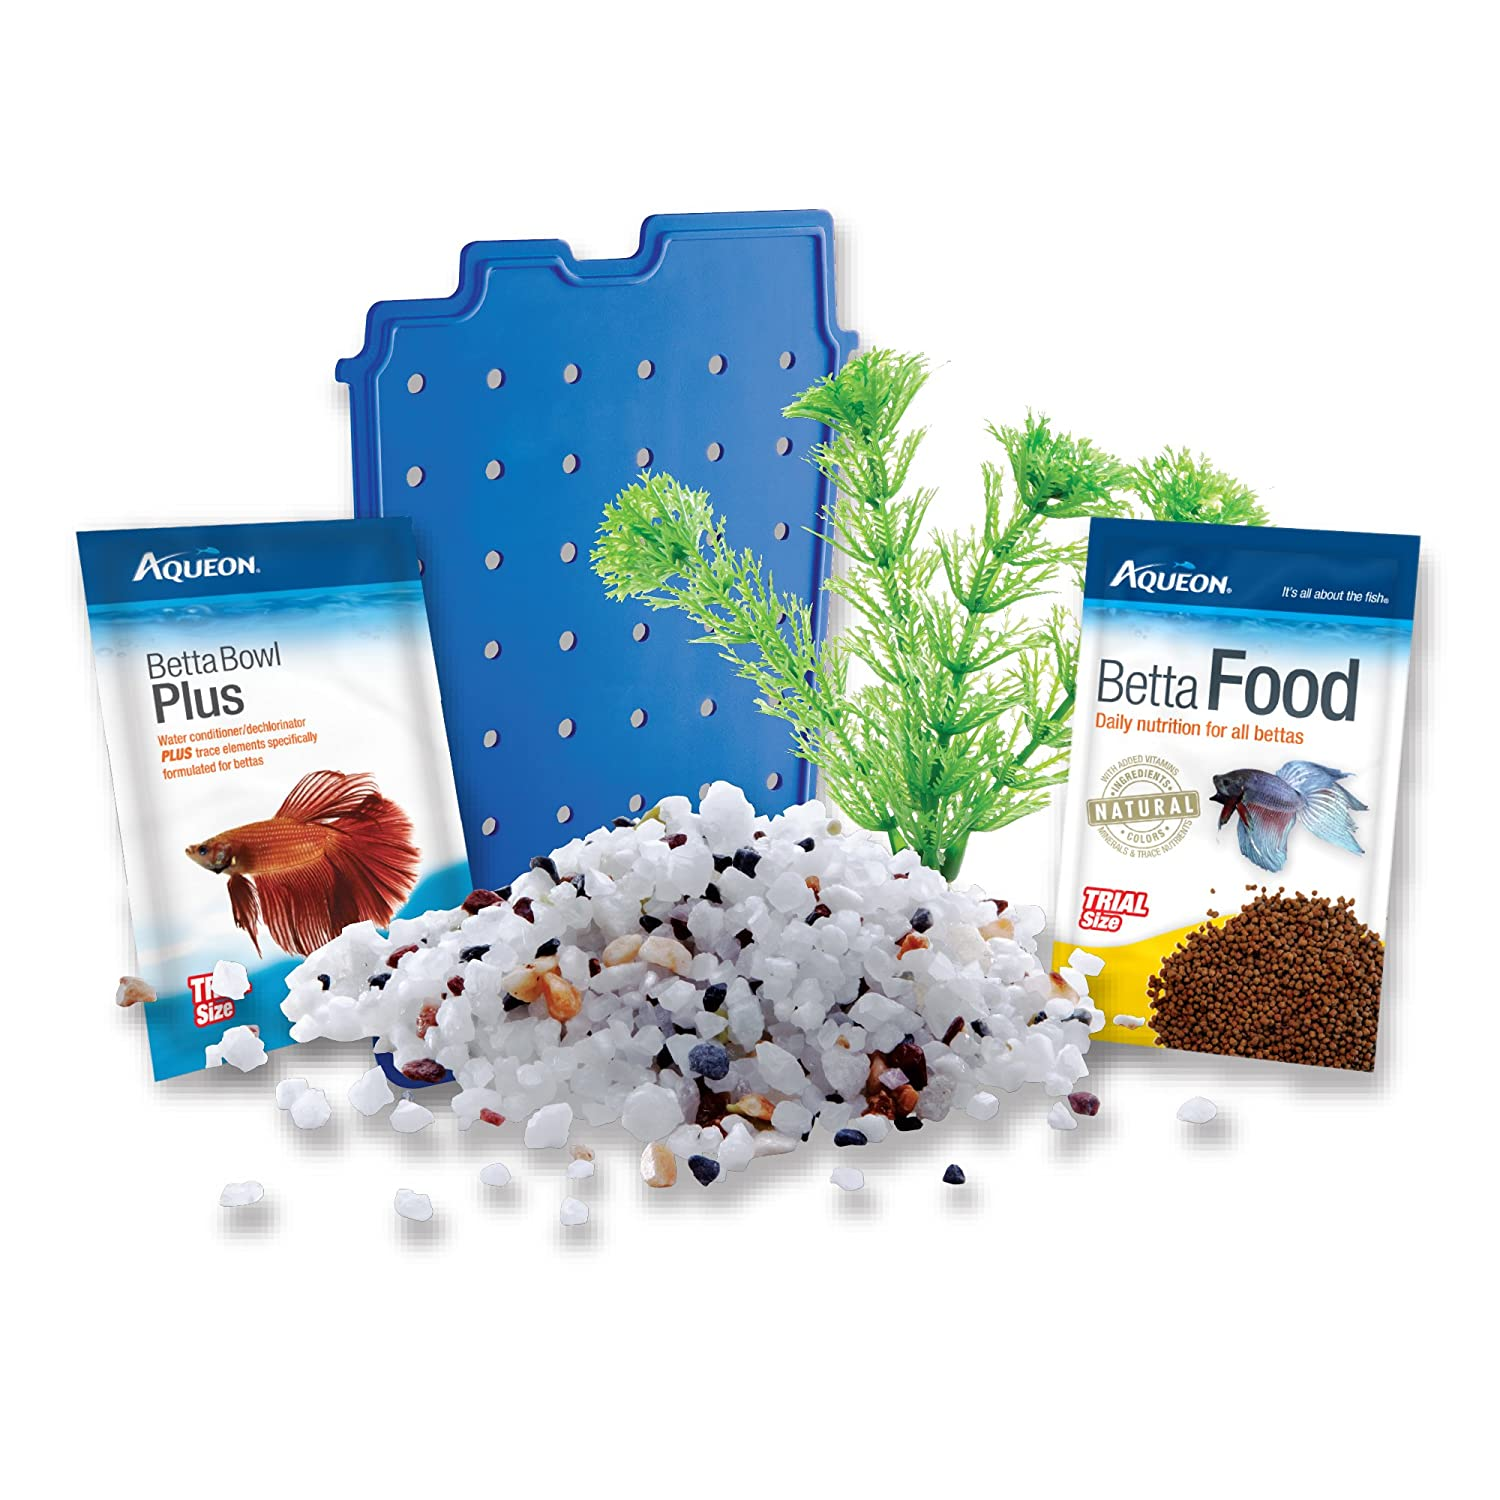 Aqueon Betta Bowl Acuario Kit en Negro: Amazon.es: Productos para mascotas